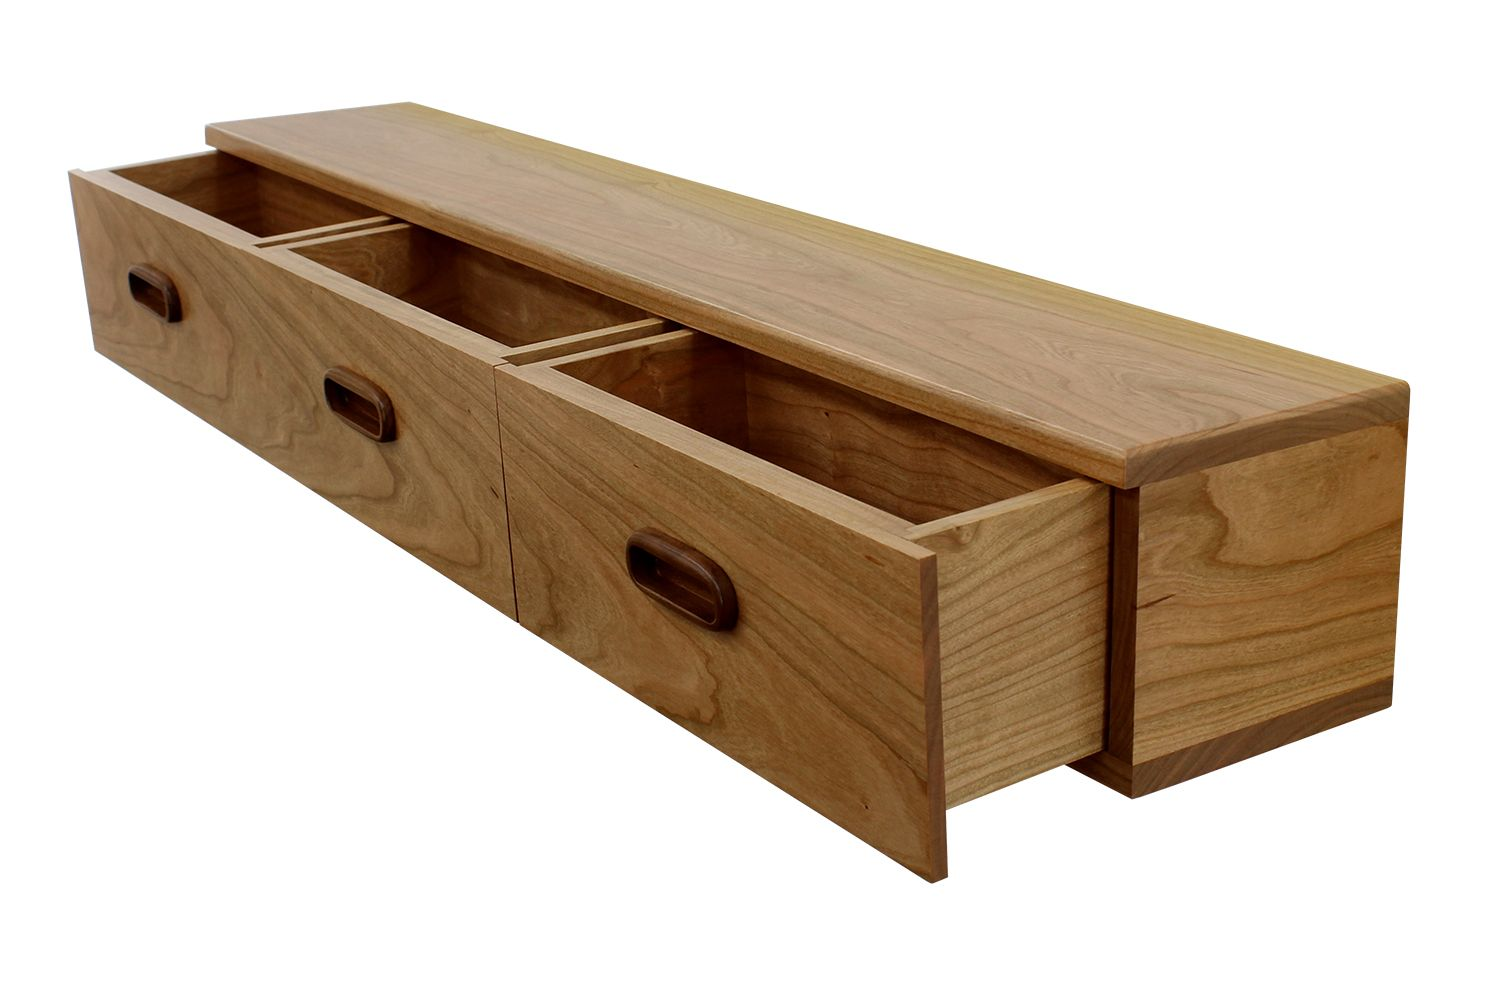 Arresting Drawer Argos Floating Shelf Custom Made Drawer Floating Shelf Solid Wood Inset Teak Drawer Pulls Buy Hand Made Drawer Floating Shelf Solid Wood Inset Teak Floating Shelf Drawer Wood houzz-03 Floating Shelf With Drawer